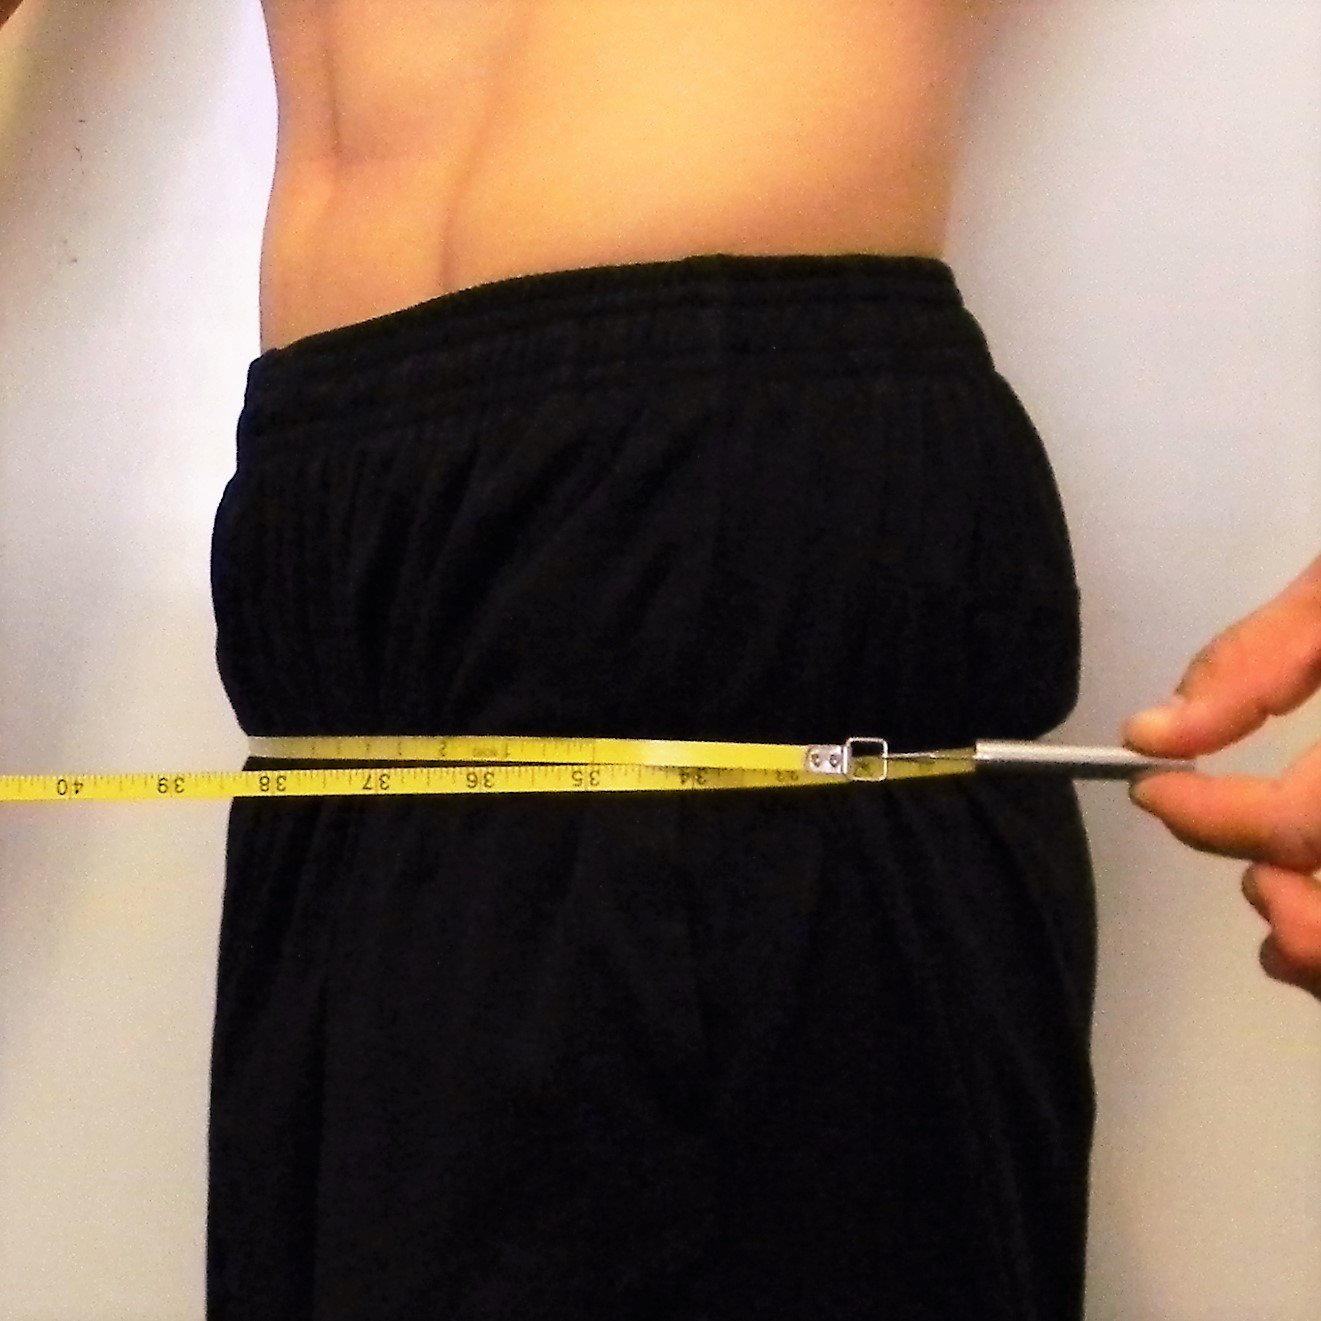 Circumference measure of the hips.